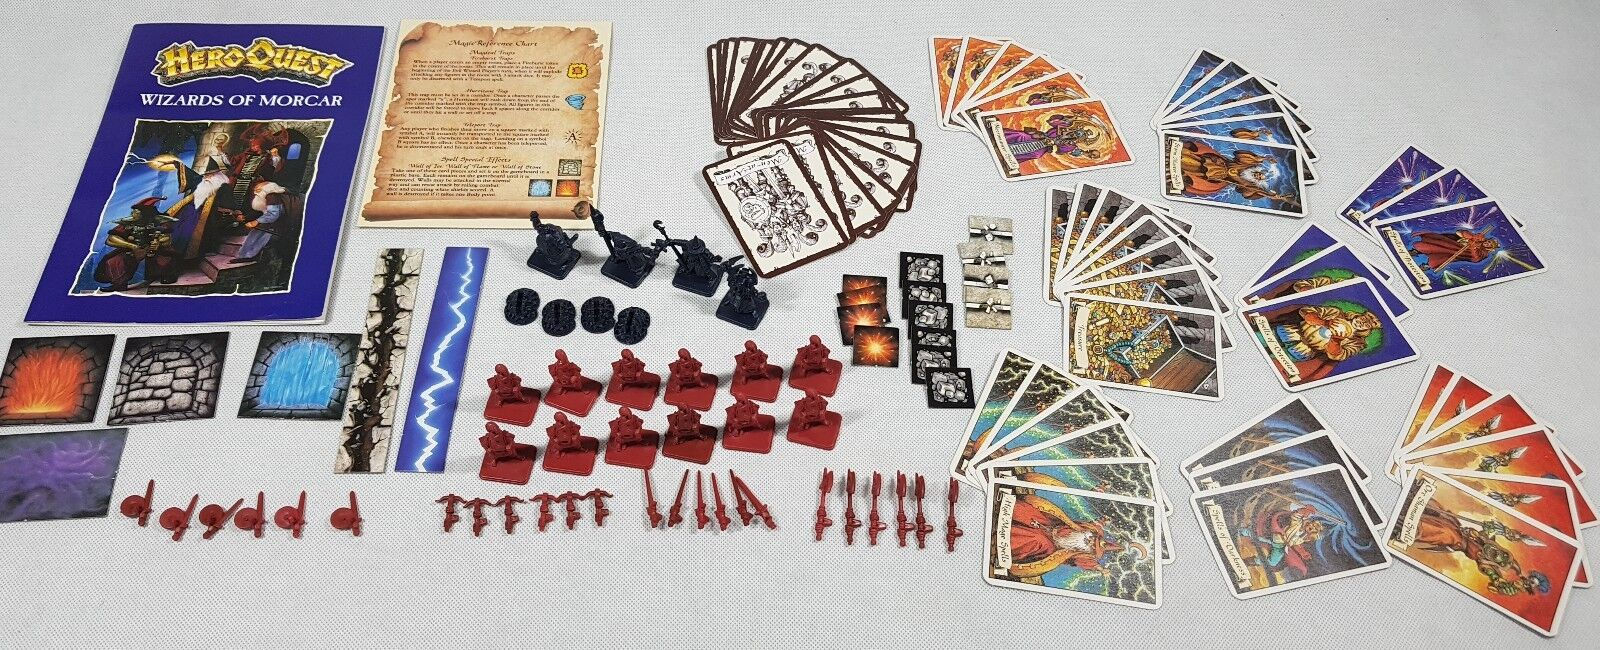 HeroQuest Wizards of Morcar expansion - unboxed, Hero Quest [ENG, 1992]